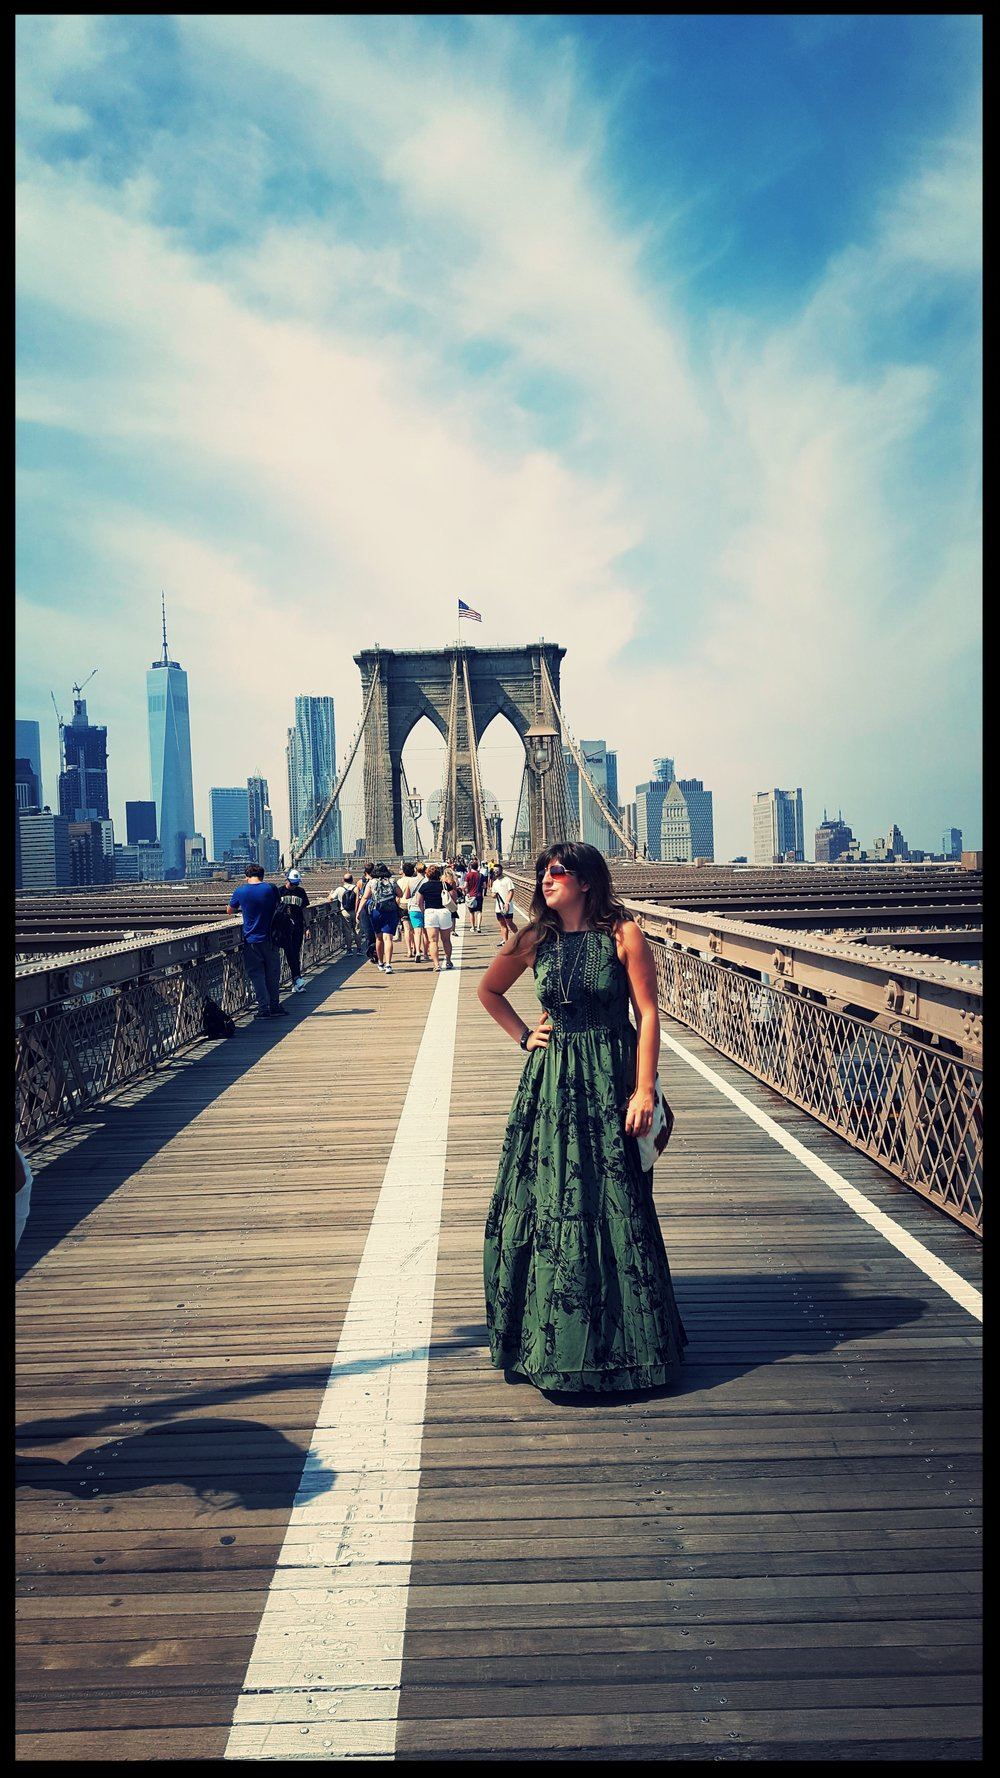 Herbaliste dress @ Brooklyn Bridge, New York